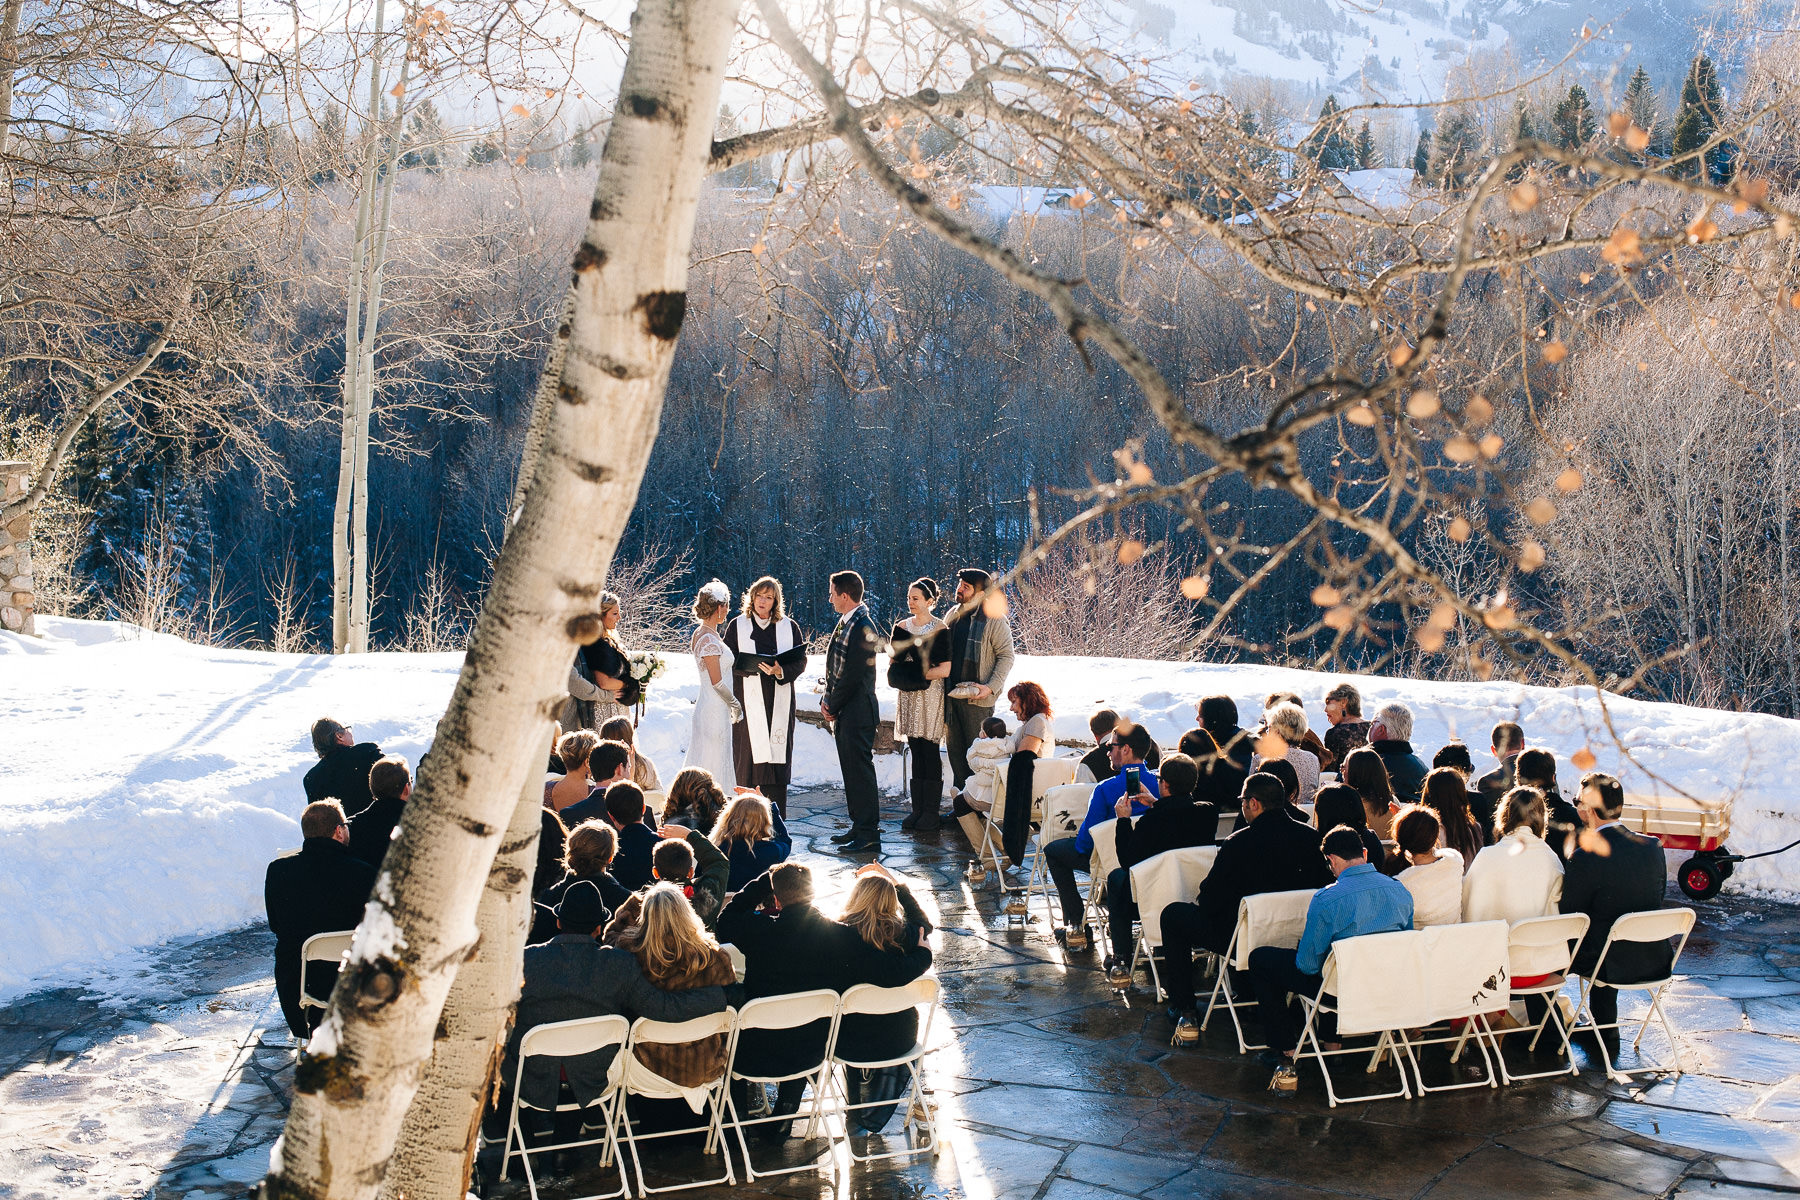 Winter wedding ceremony with snow and aspens at Aspen Meadows Resort in Aspen, Colorado.